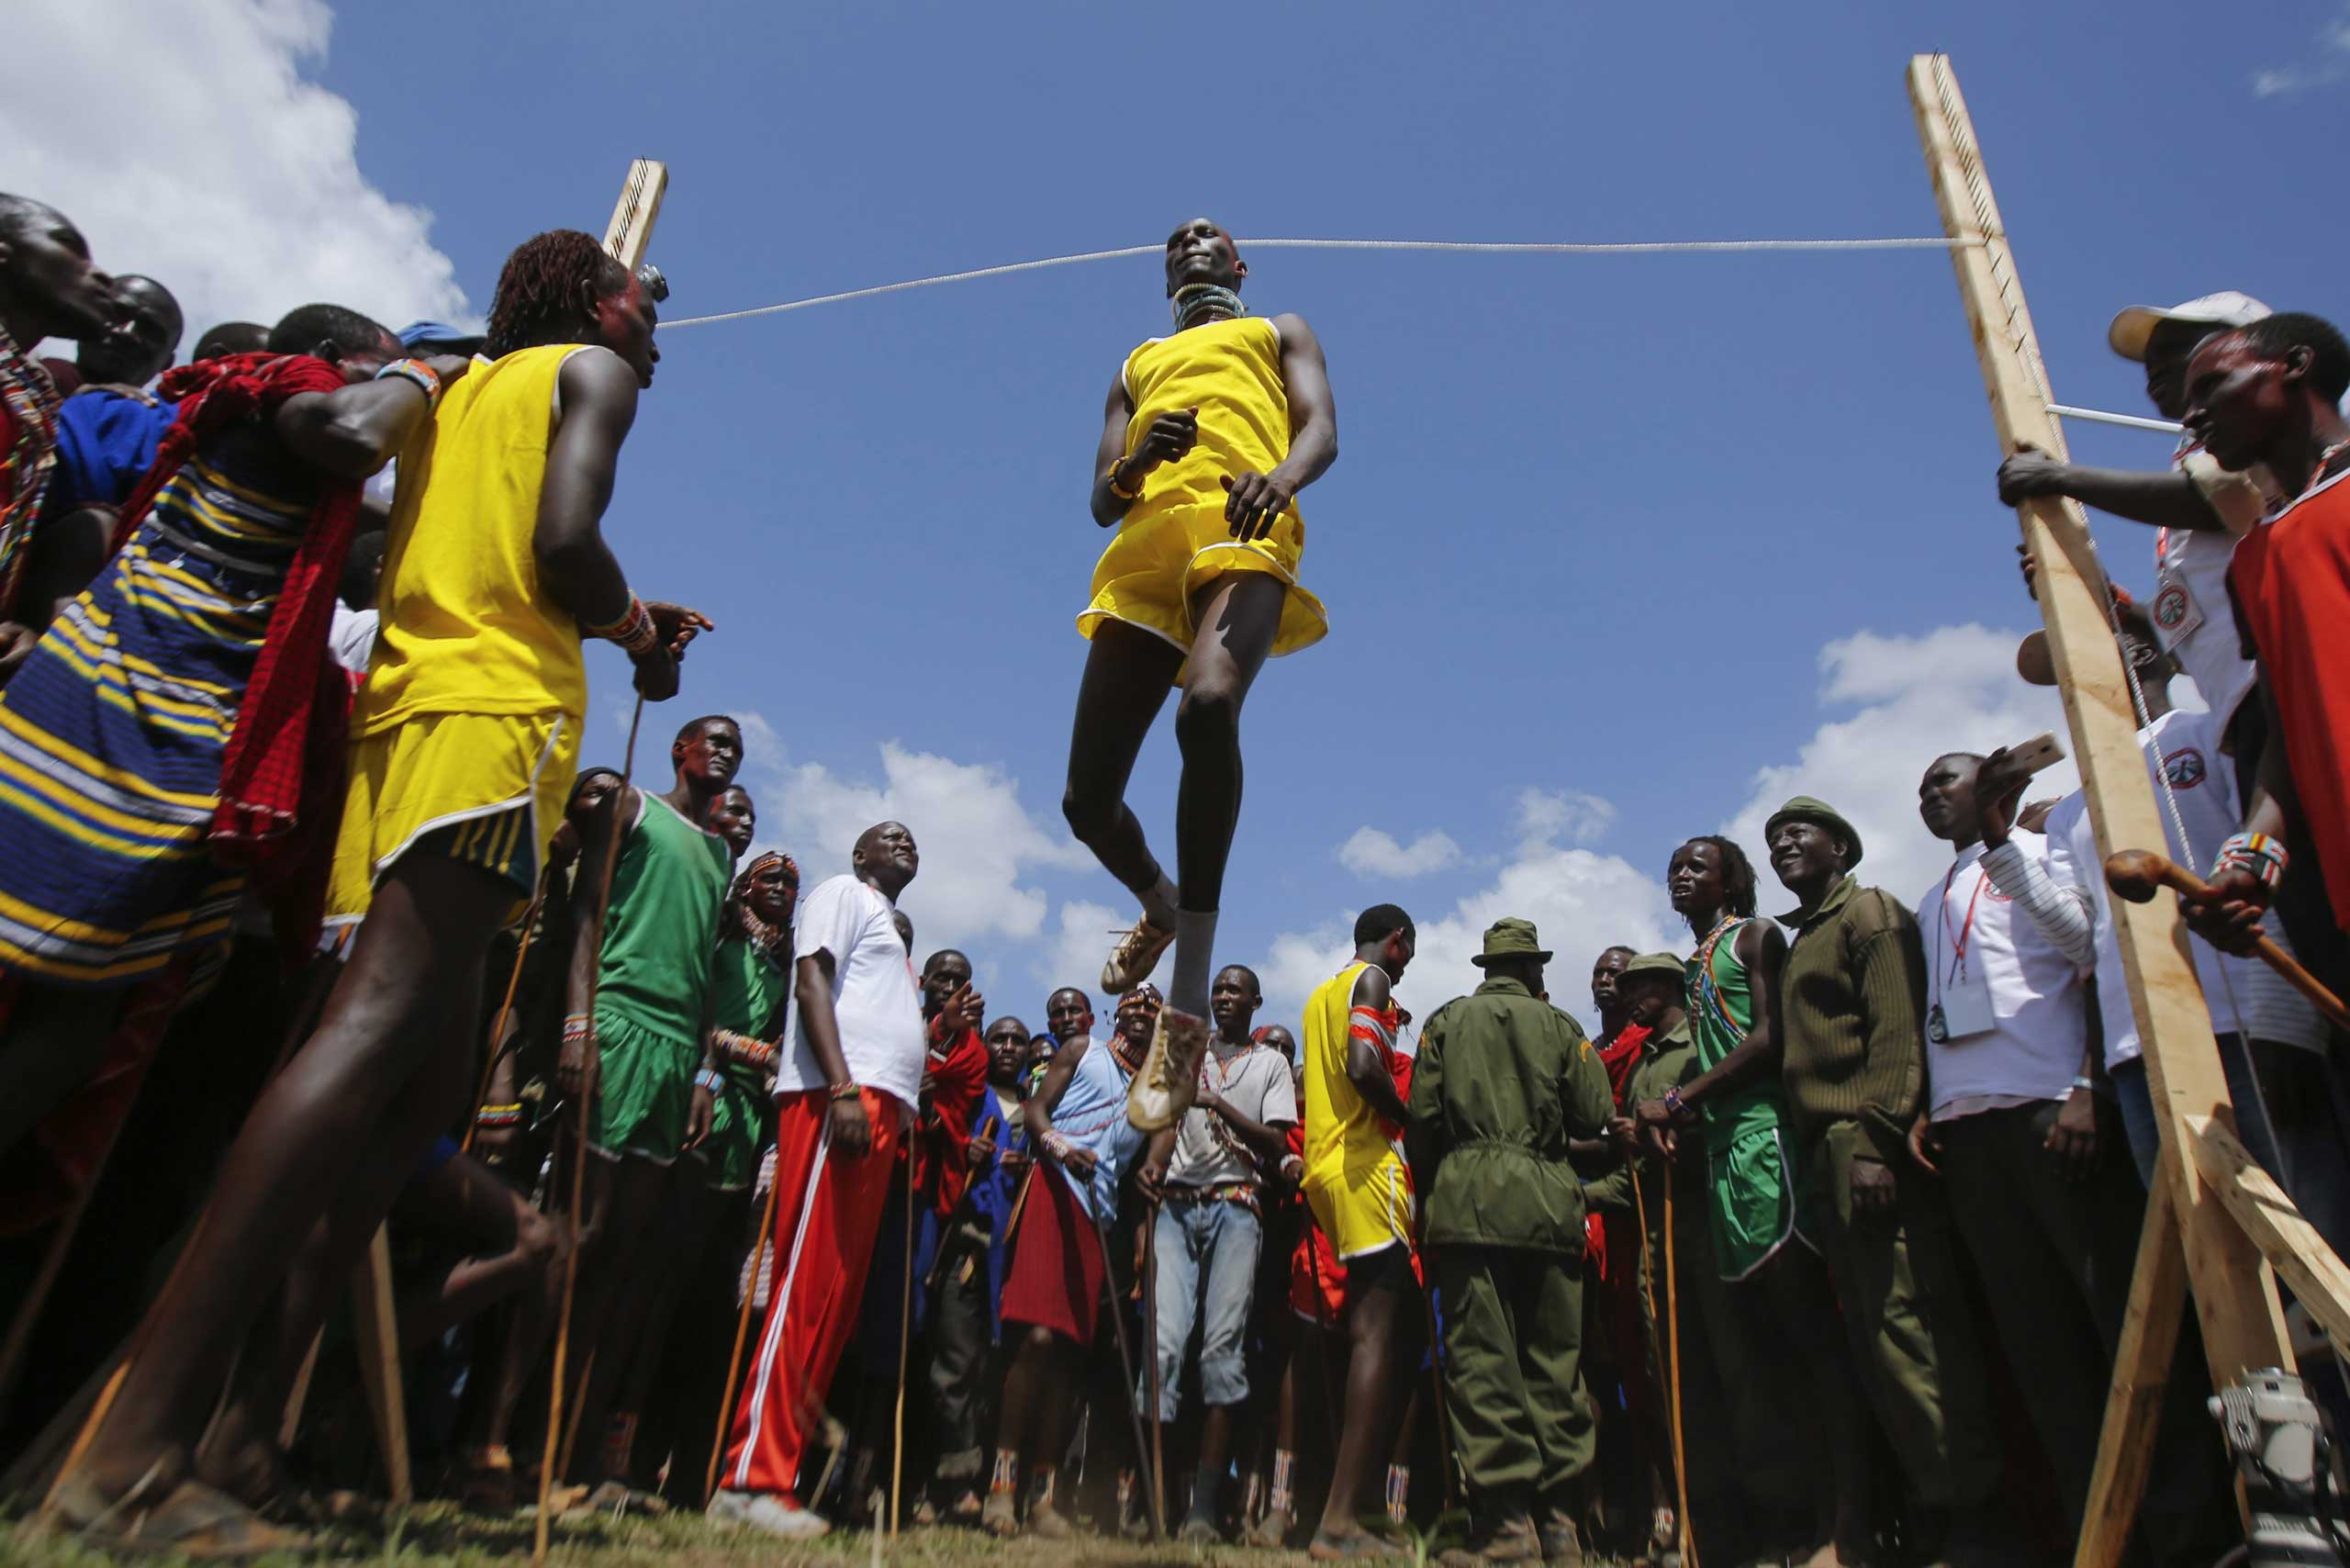 Dec. 13, 2014. A young Maasai man competes in the High Jumping competition at the Maasai Olympics 2014, held in Kimana village near the border with Tanzania adjacent to the Amboseli National Park in Kenya.The Maasai Olympics, first held in 2012, was organized by Maasai leaders and the wildlife conservation group 'Big Life Foundation' to stop the killings of lions and other wild animals. The event aims to change the mindset of young Maasai men whose traditional lion hunting has been an important coming-of-age ritual.